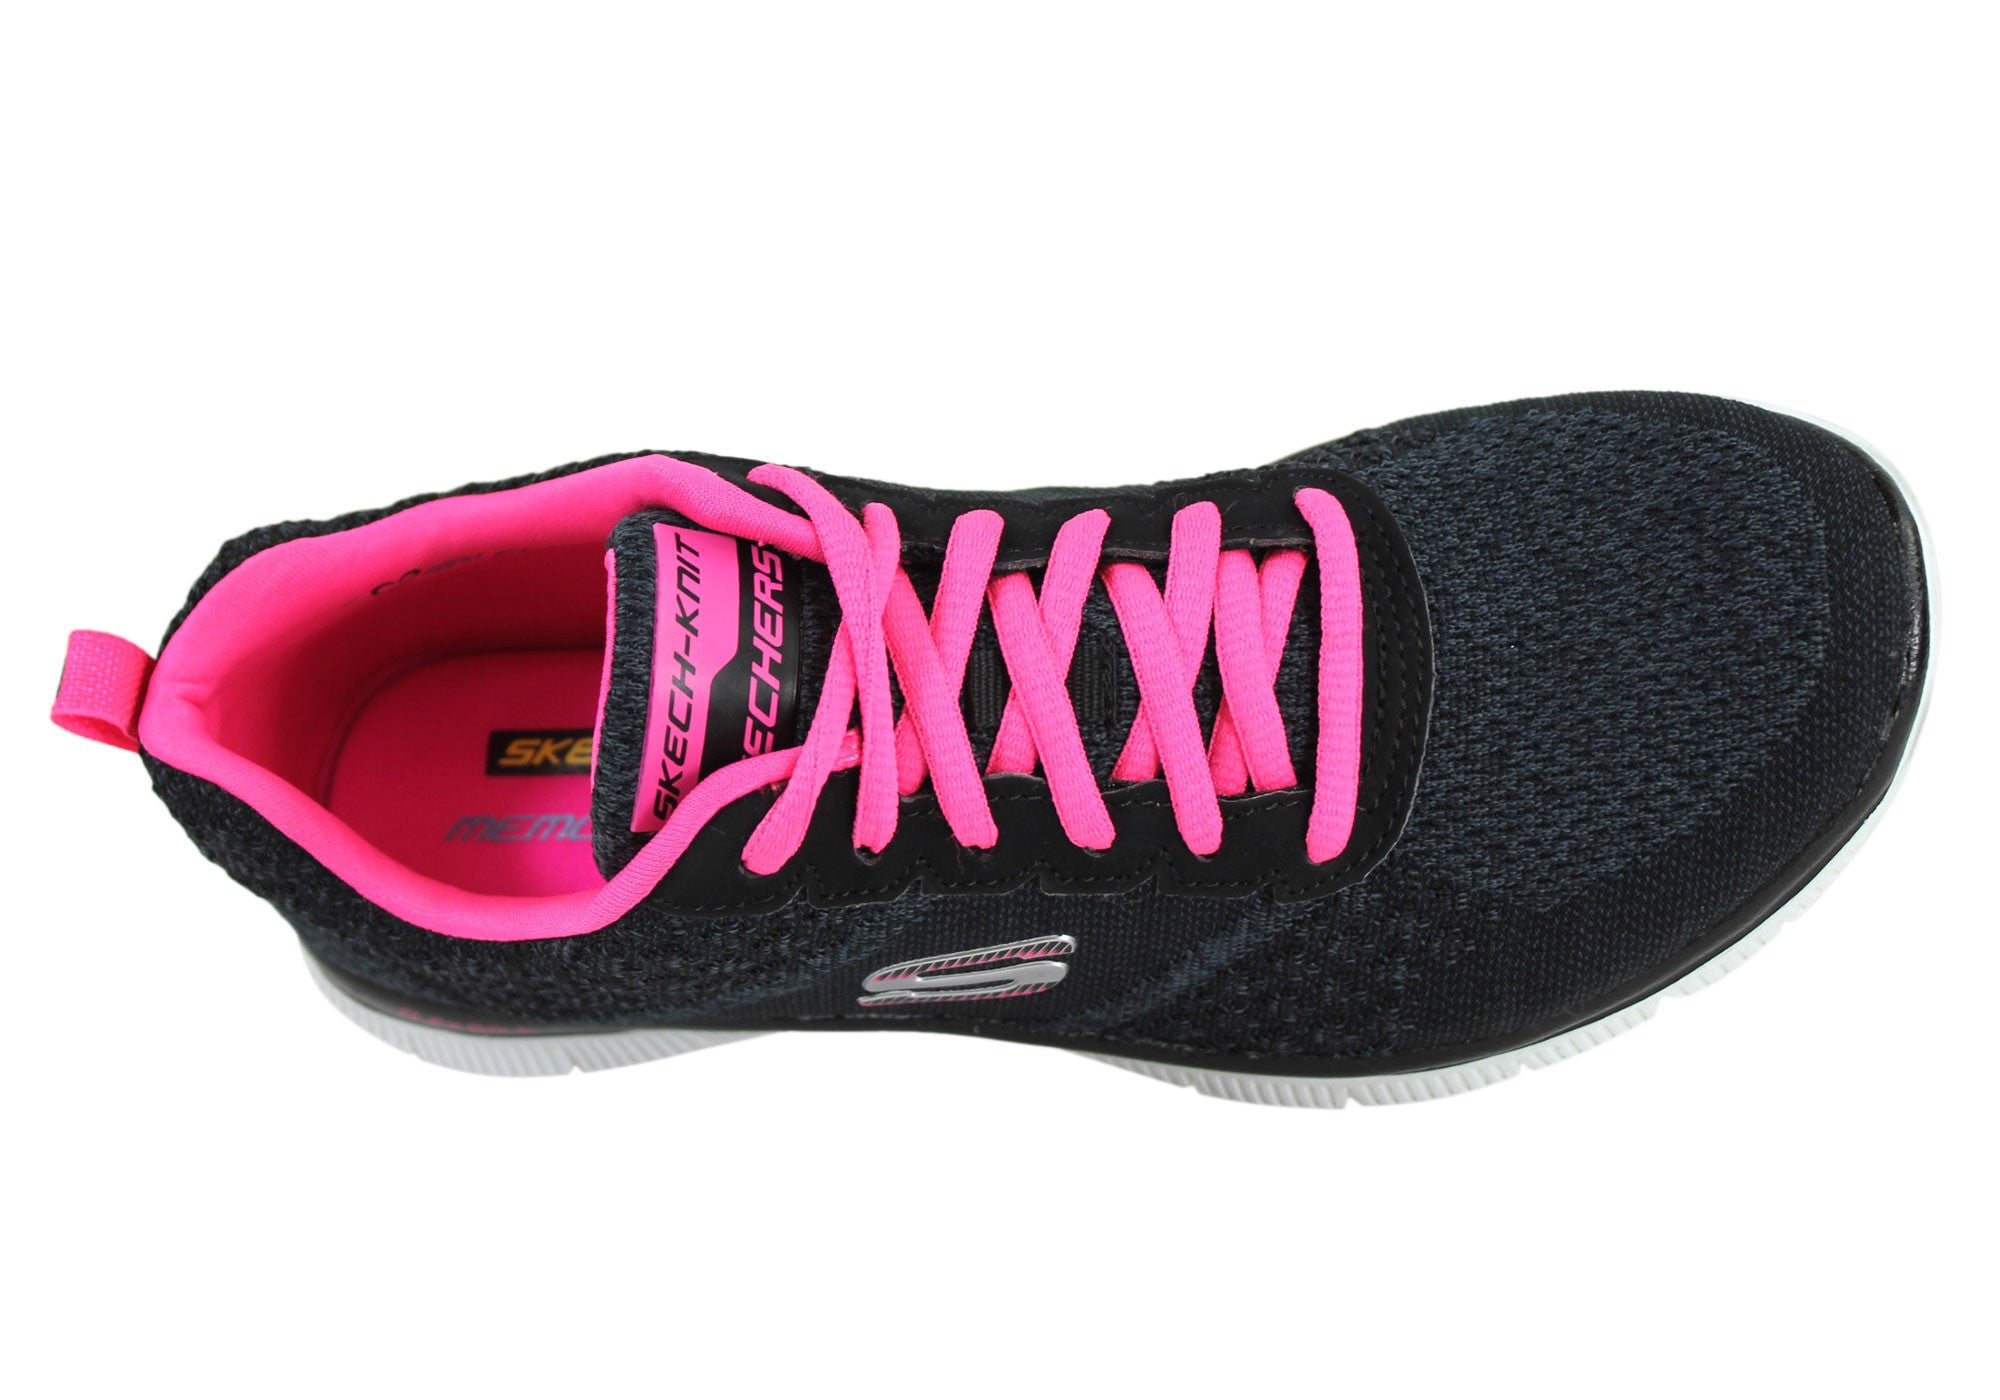 Skechers Flex Appeal Simply Sweet Womens Lace Up Sneakers